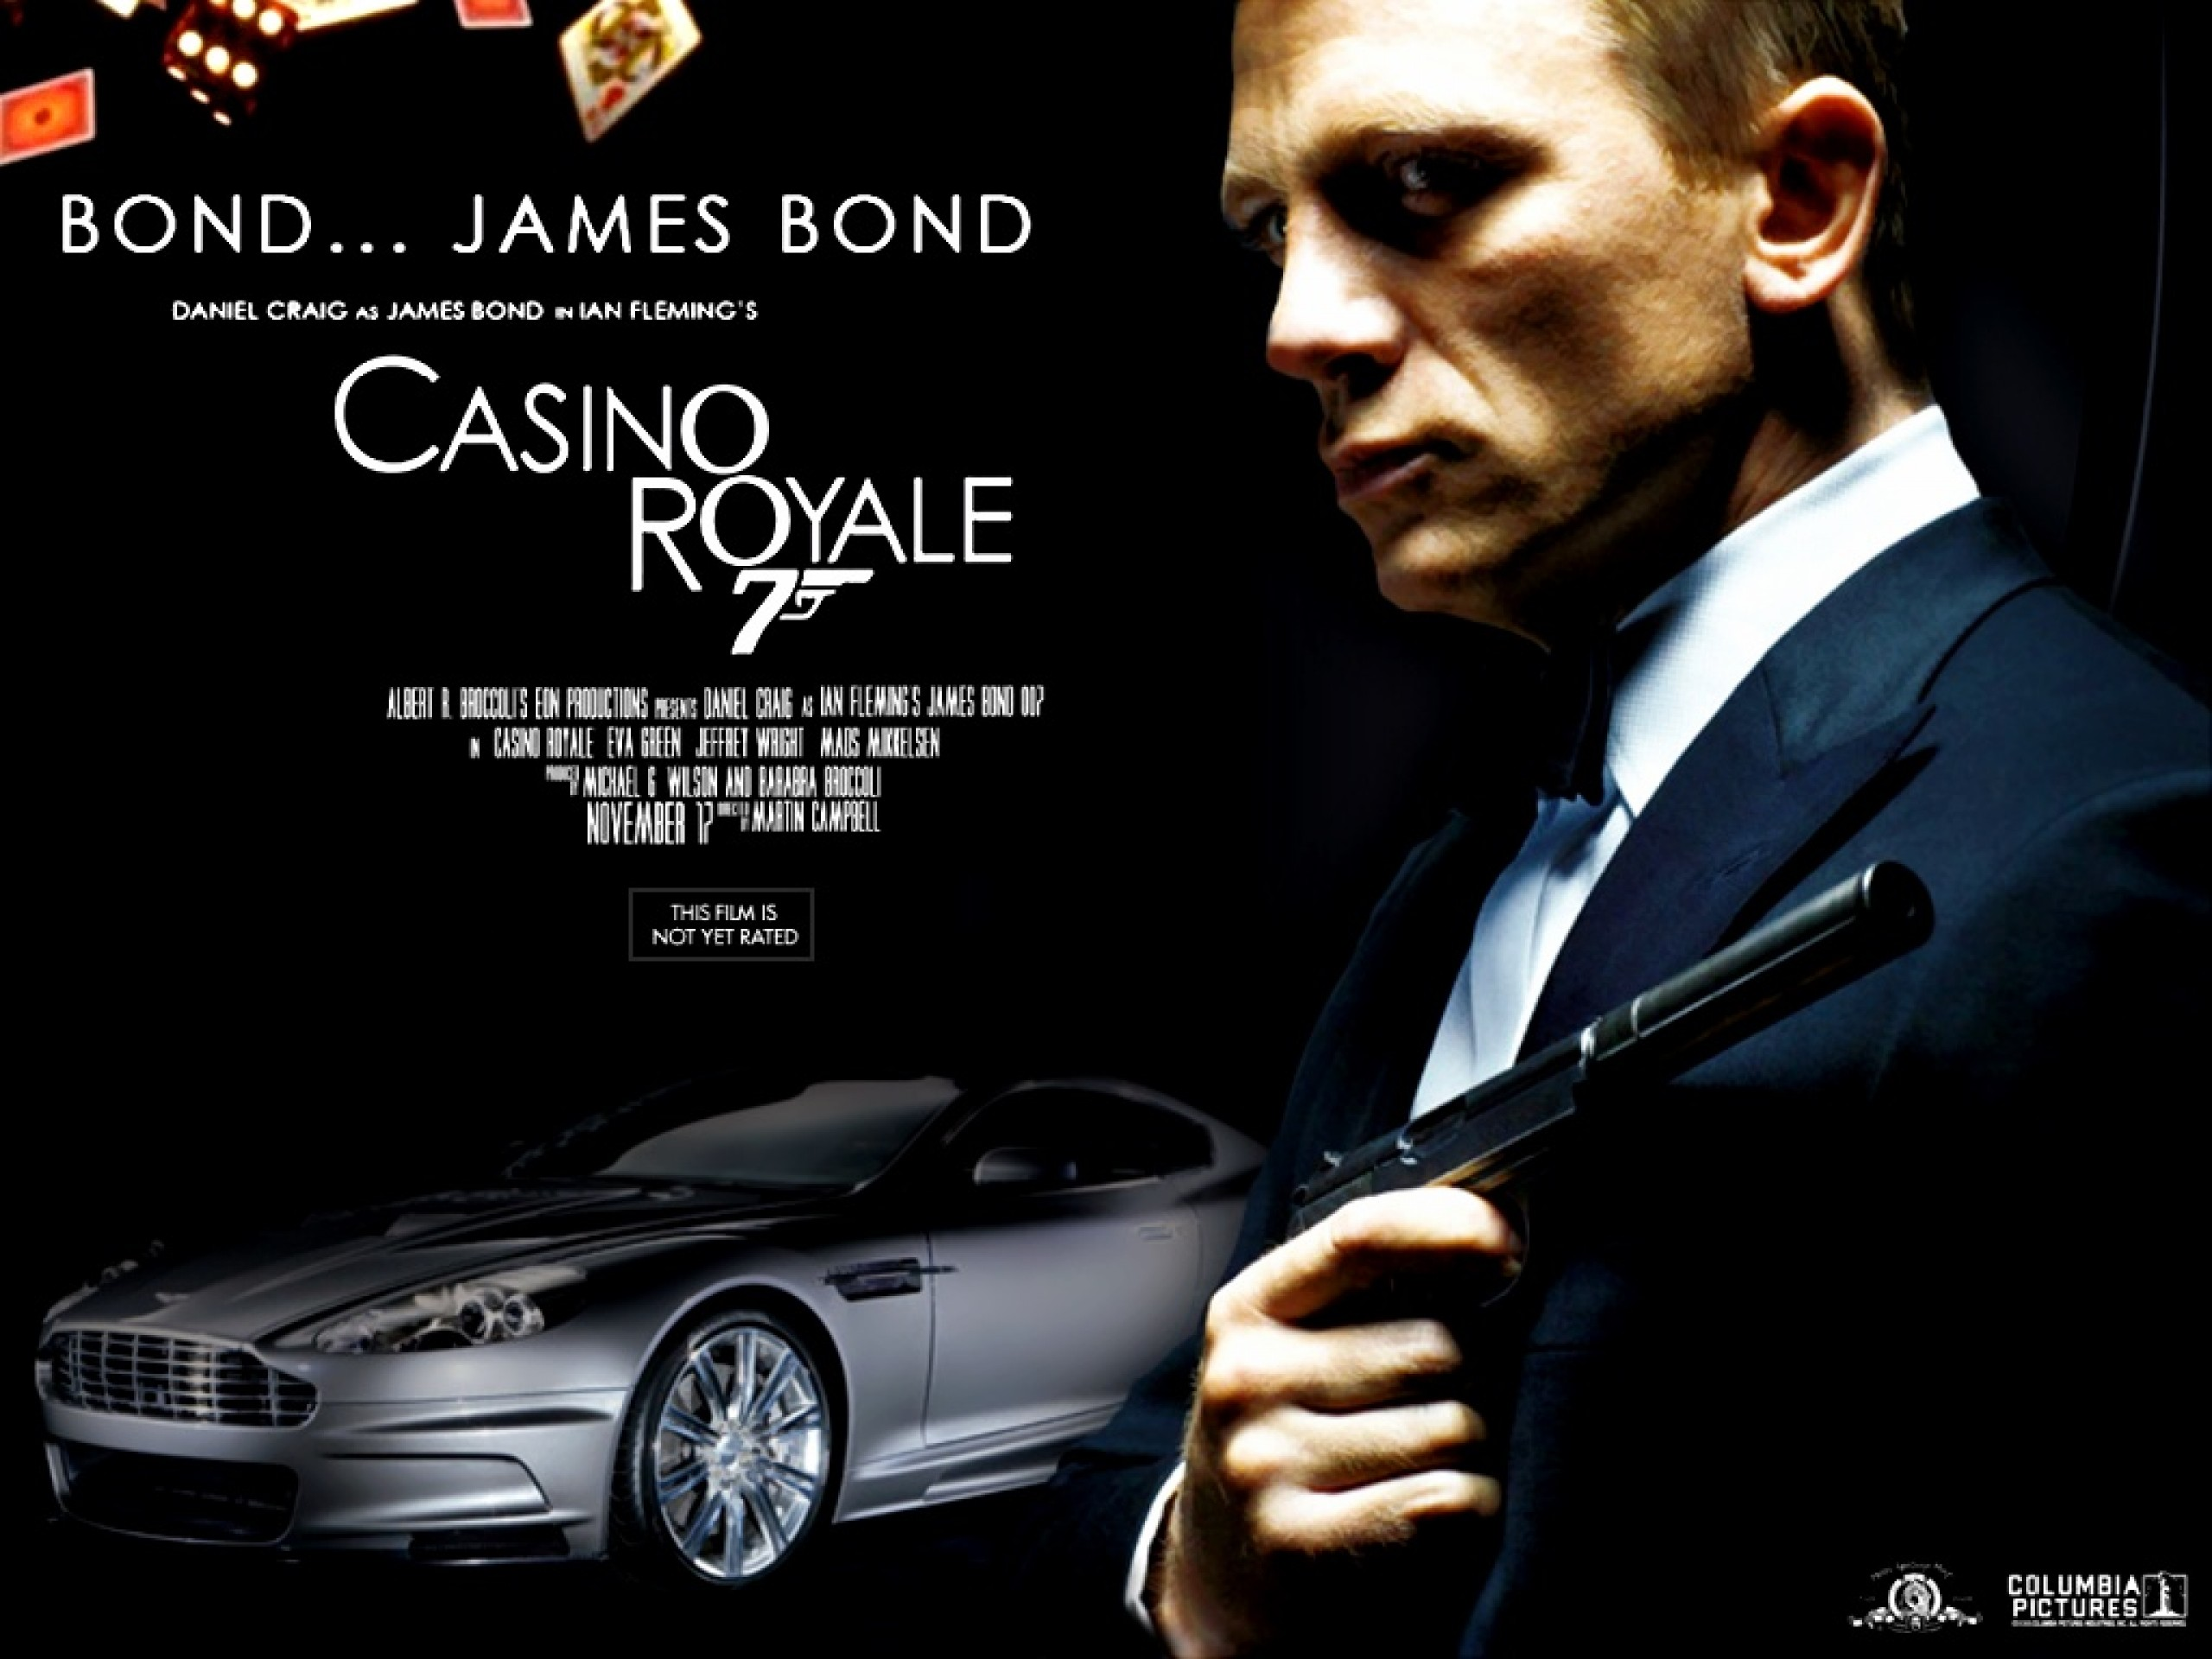 james bond casino royale full movie online a ra